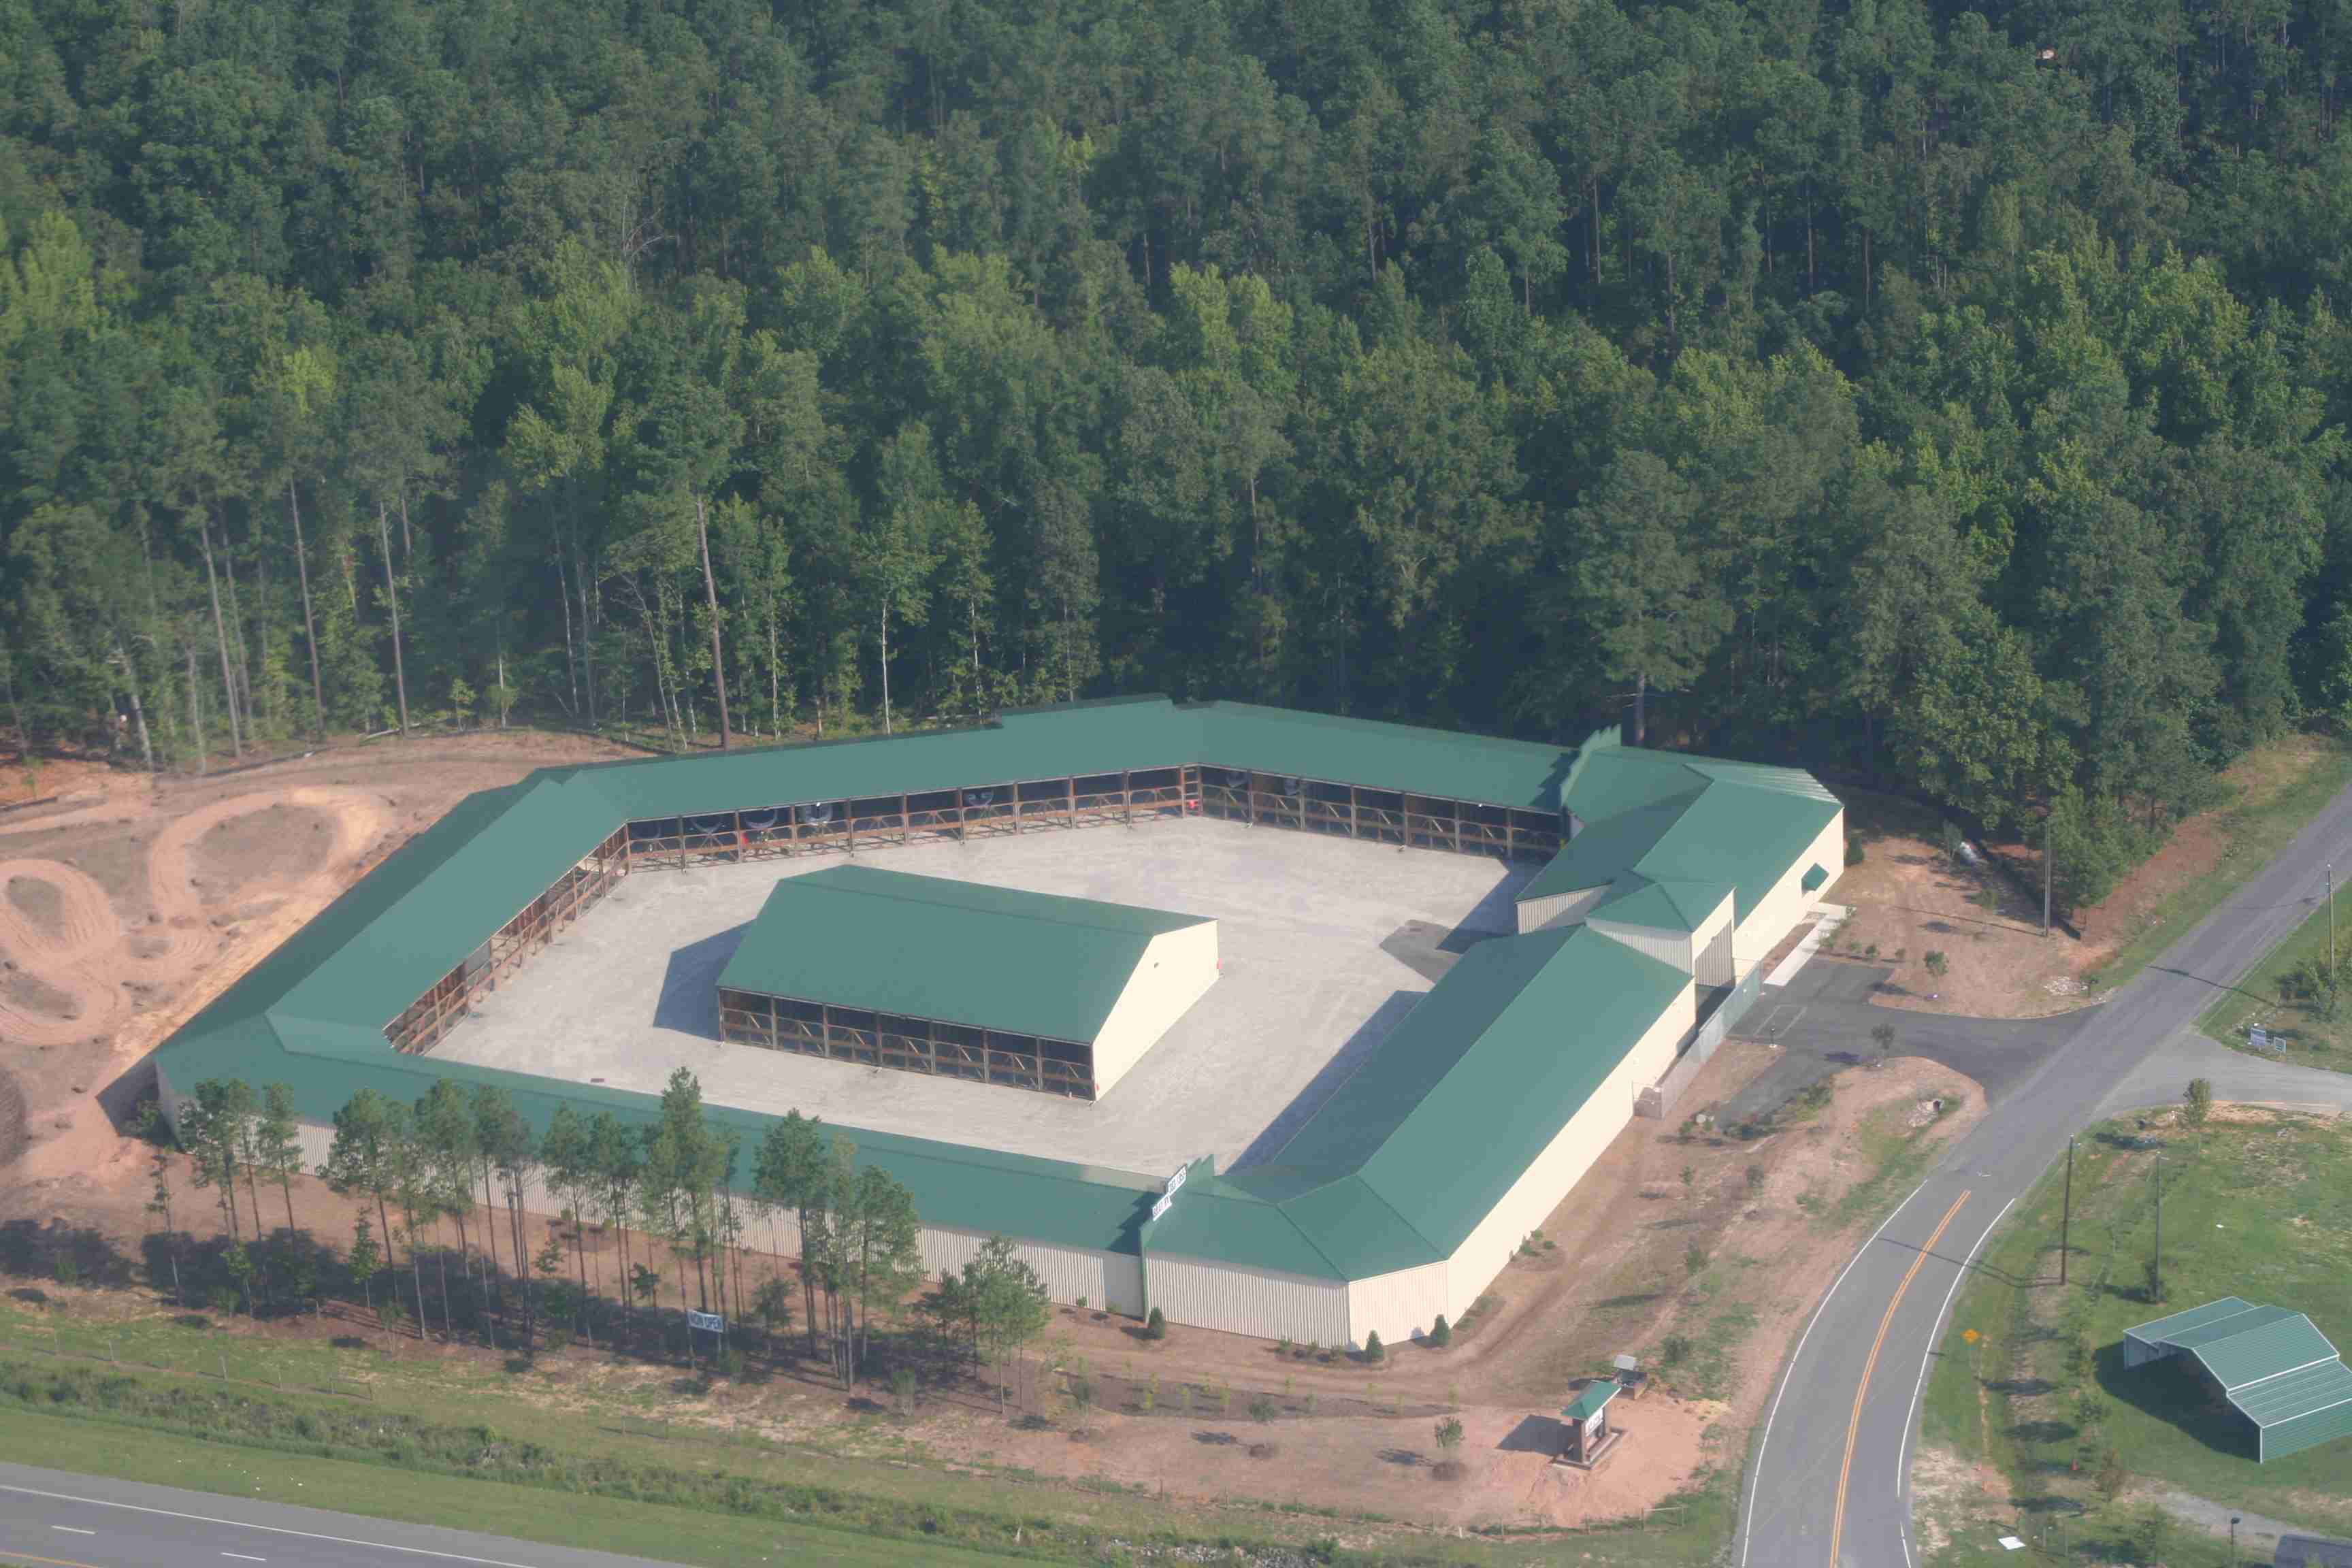 Ariel View of Facility